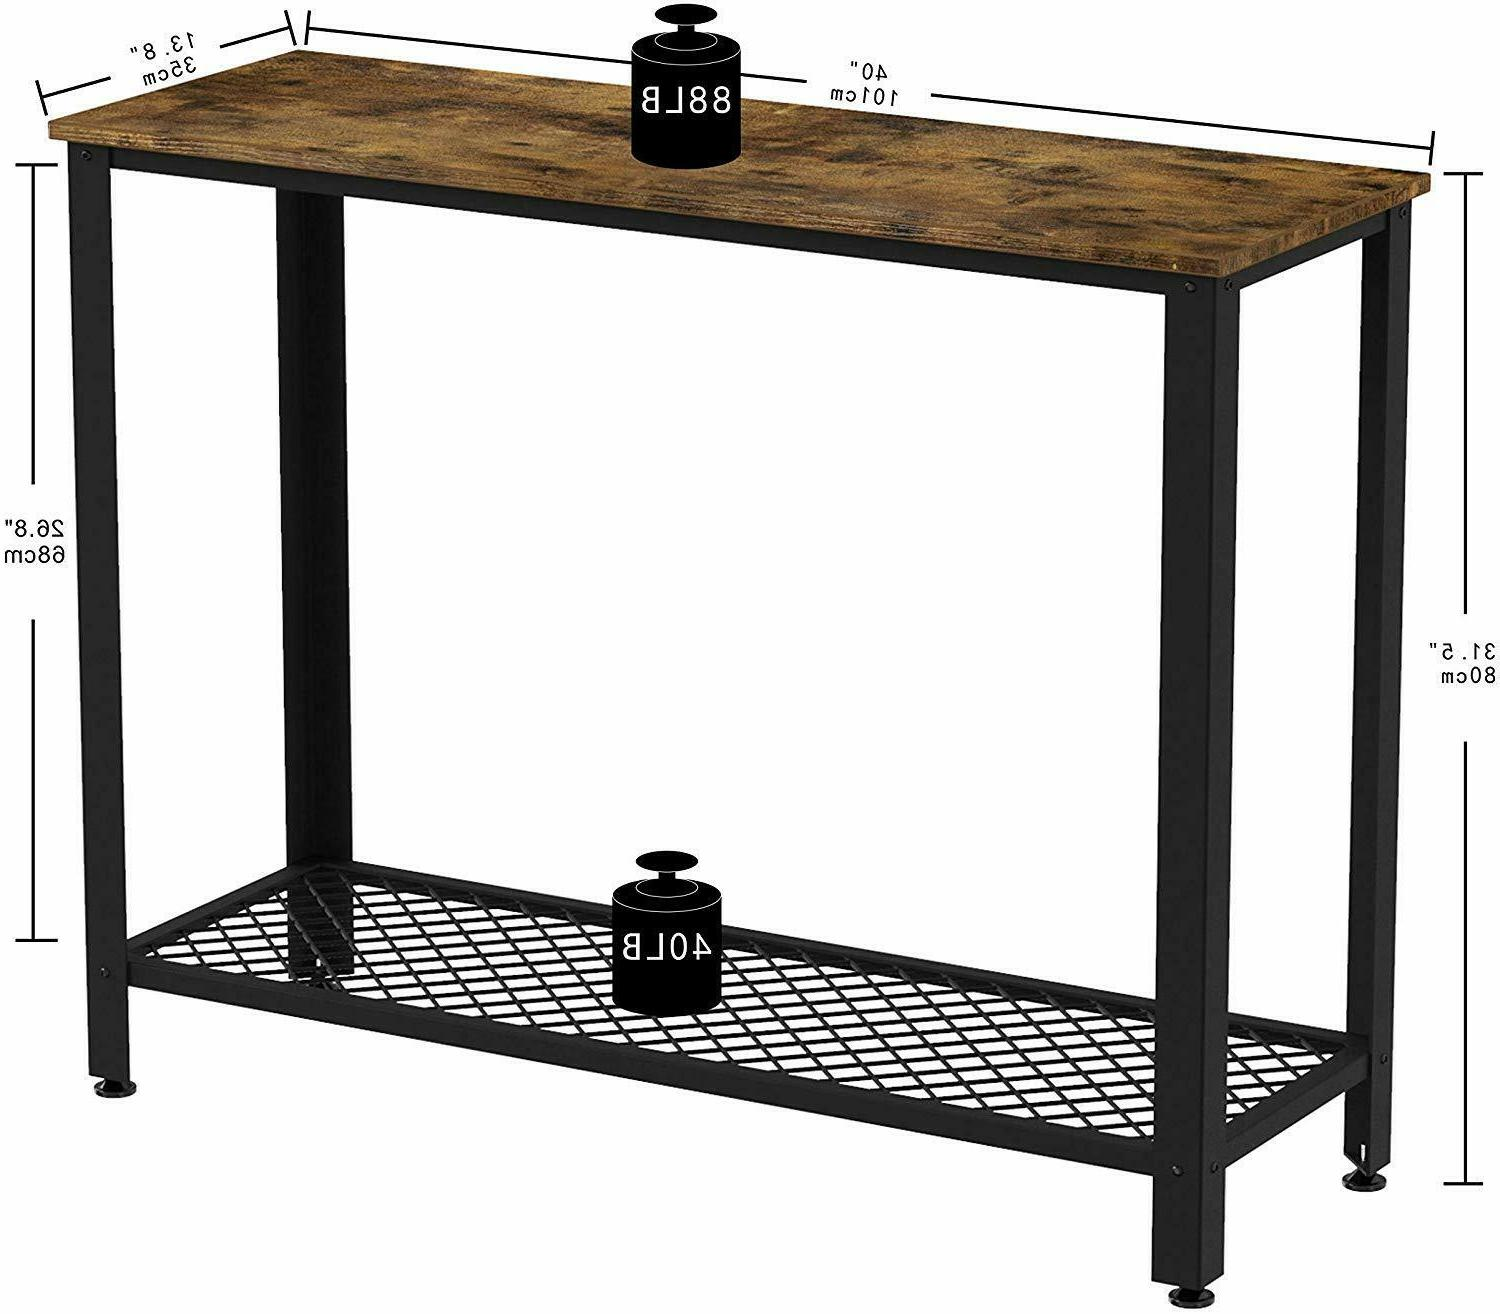 IRONCK Vintage Table for Entry with Shelf Easy